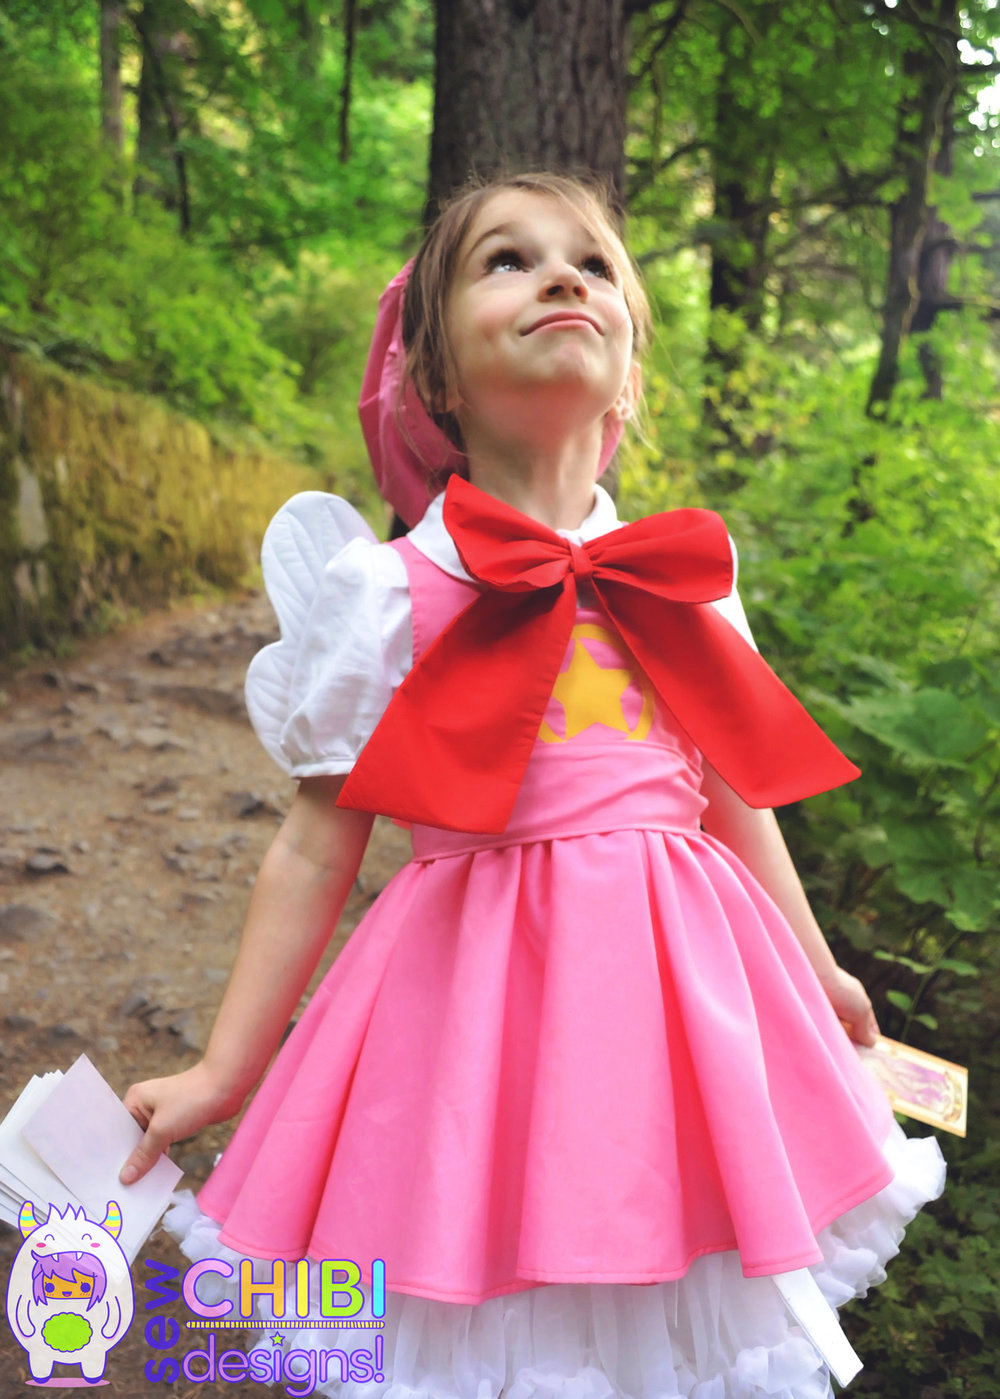 chibi Cardcaptor Sakura cosplay fashion sewn by Sew Chibi Designs for the Classic Anime theme for Sew Geeky the Series!